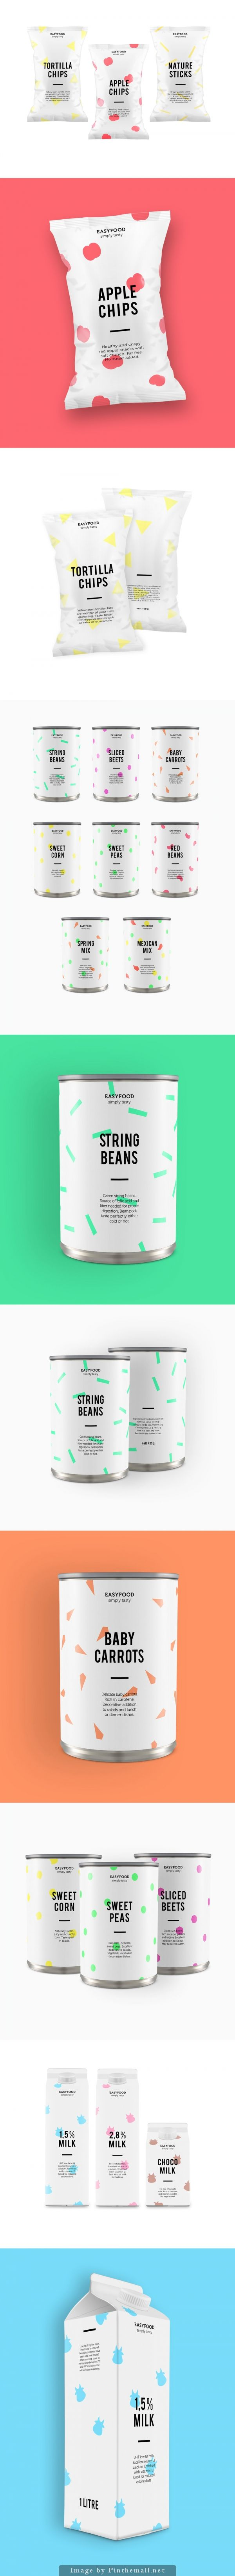 Concept Easyfood Packaging